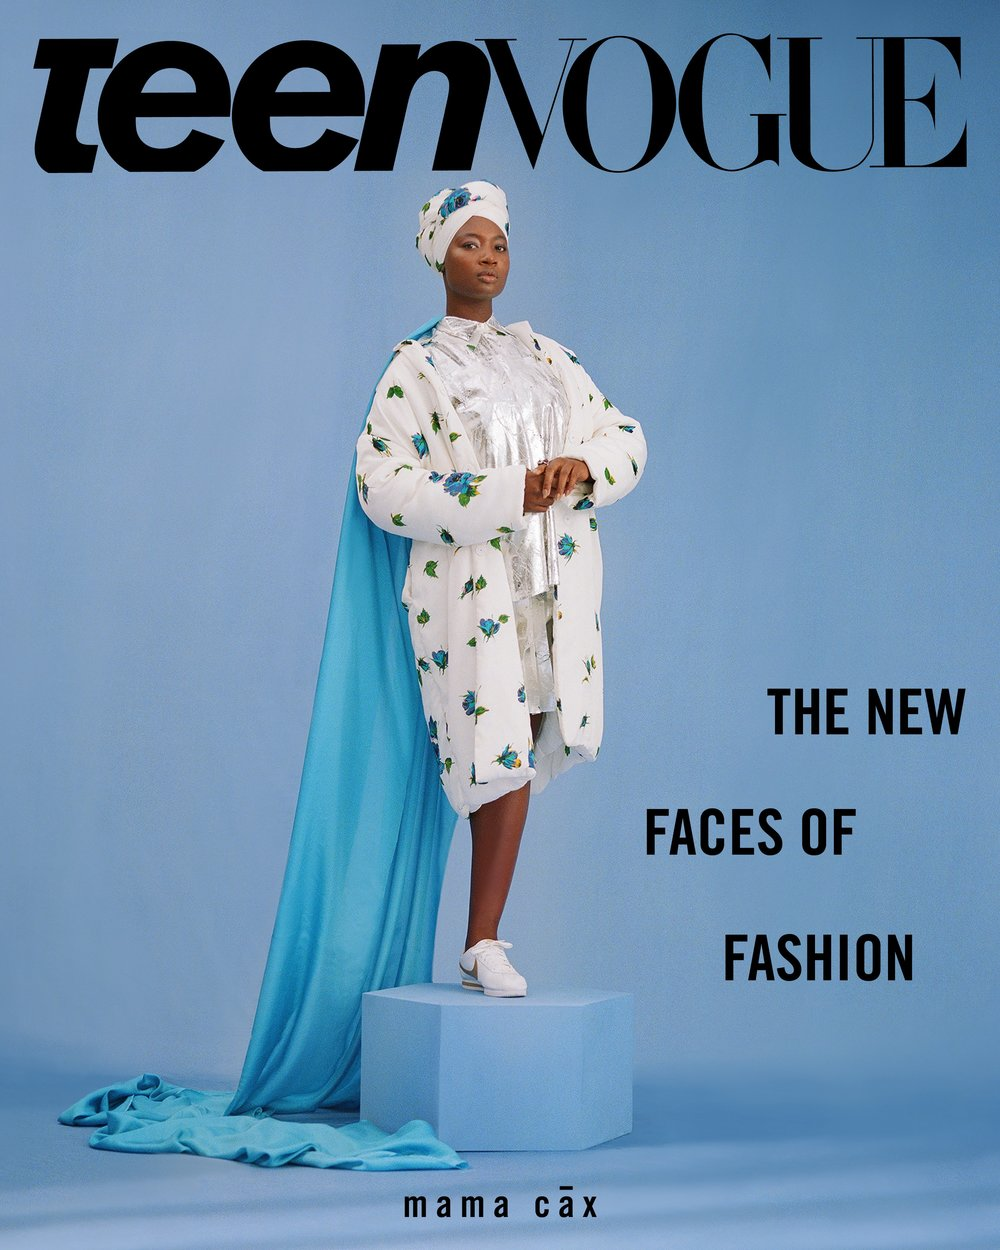 "Mama Cax was also featured in TeenVogue's September issue. In the cover she is wearing a white turban, a white floral jacket and has a large blue cape flowing behind her while she stands on a blue box. Behind her the caption reads: ""The New Faces of Fashion"" - referring to the other models with disabilities that the magazine has featured in their September issue."